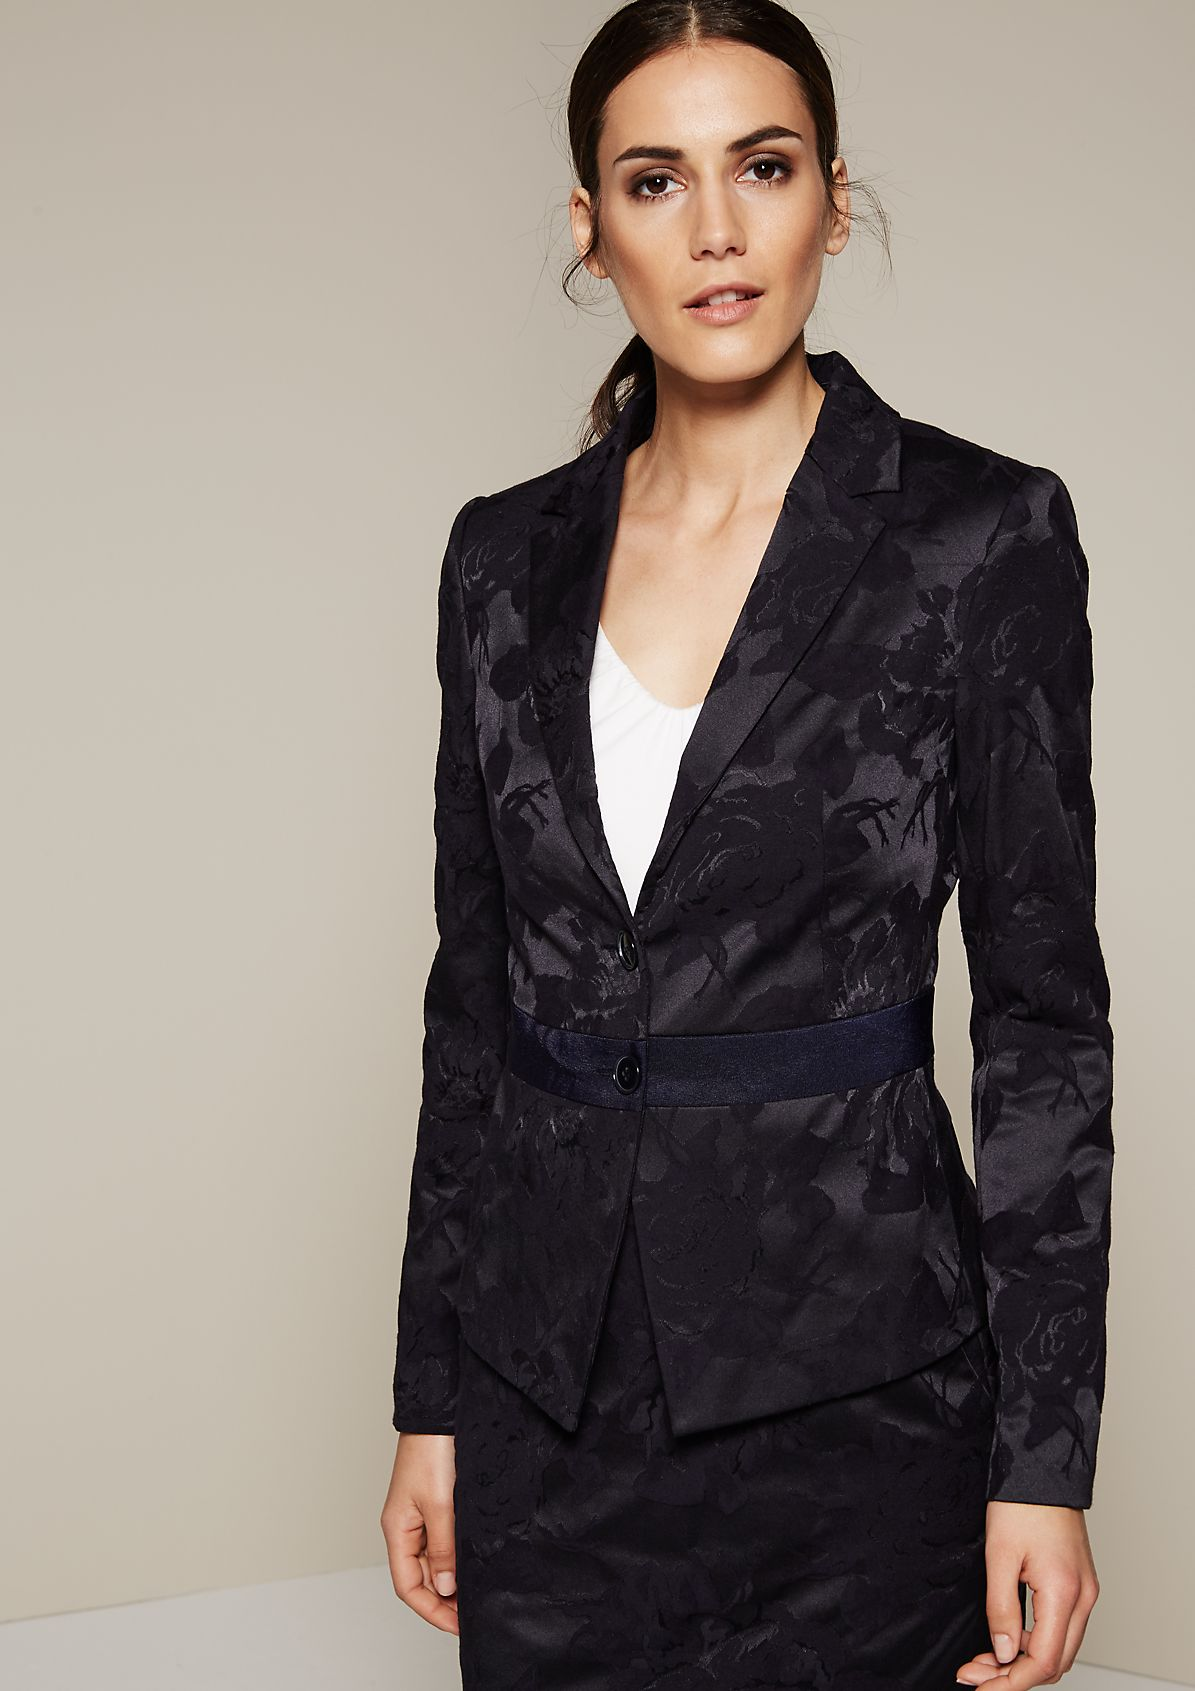 Extravagant blazer covered in a fine jacquard pattern from s.Oliver